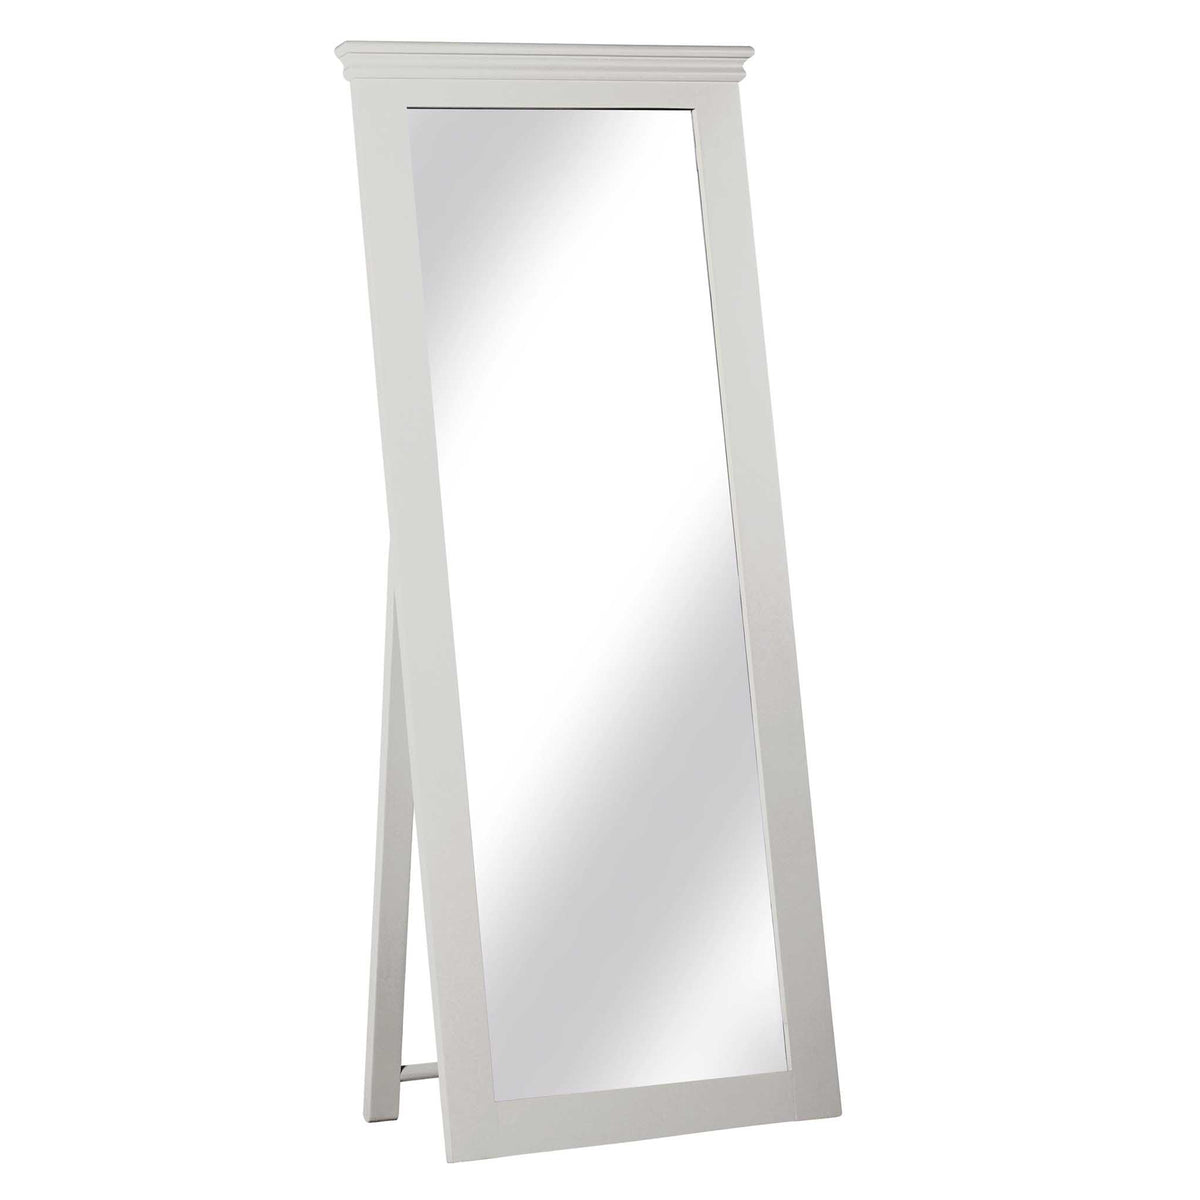 Melrose Cotton White Freestanding Cheval Mirror from Roseland Furniture